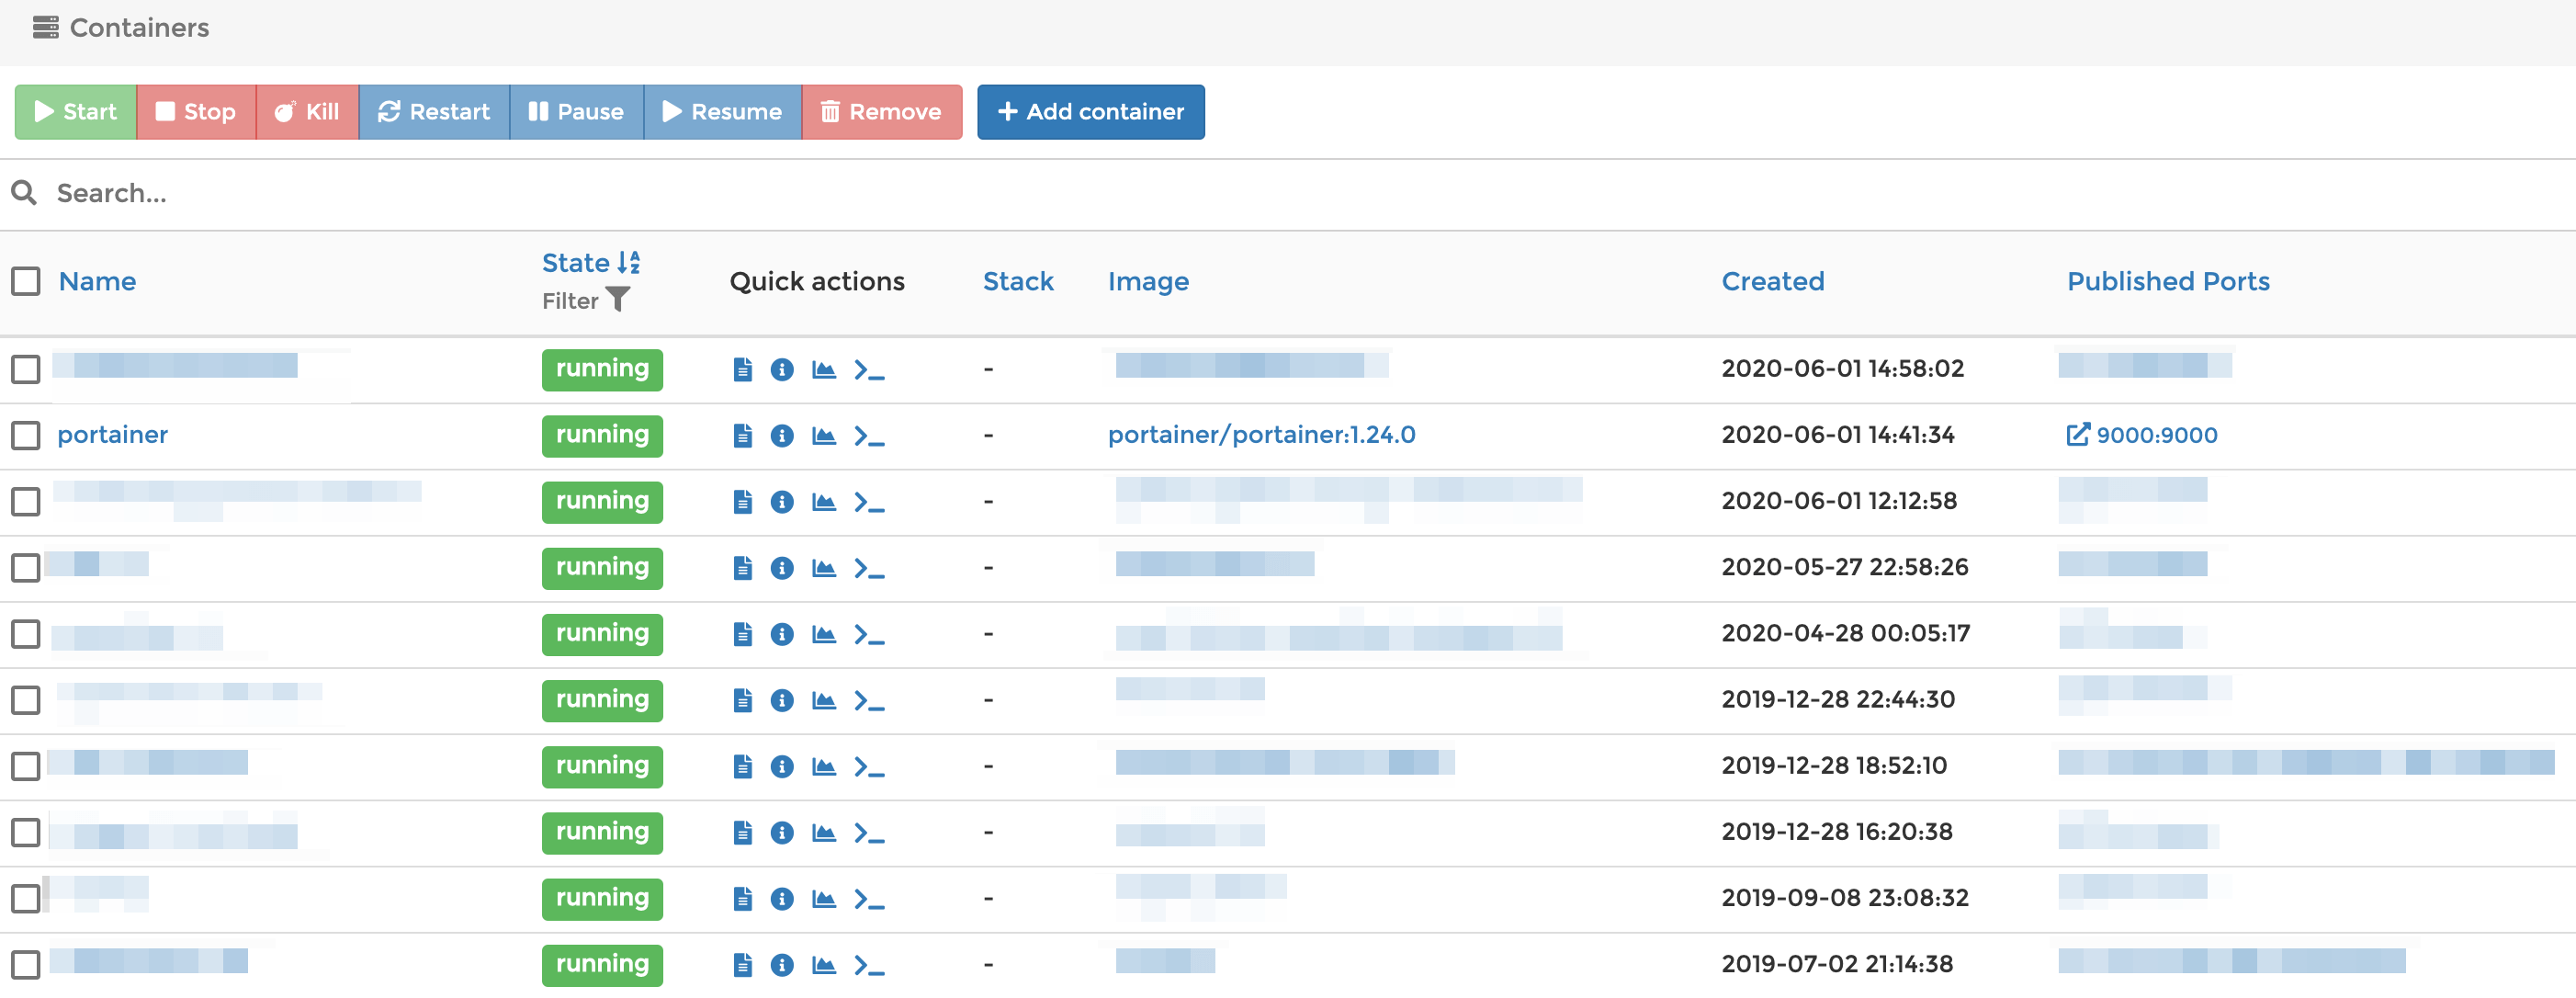 List of existing Docker containers